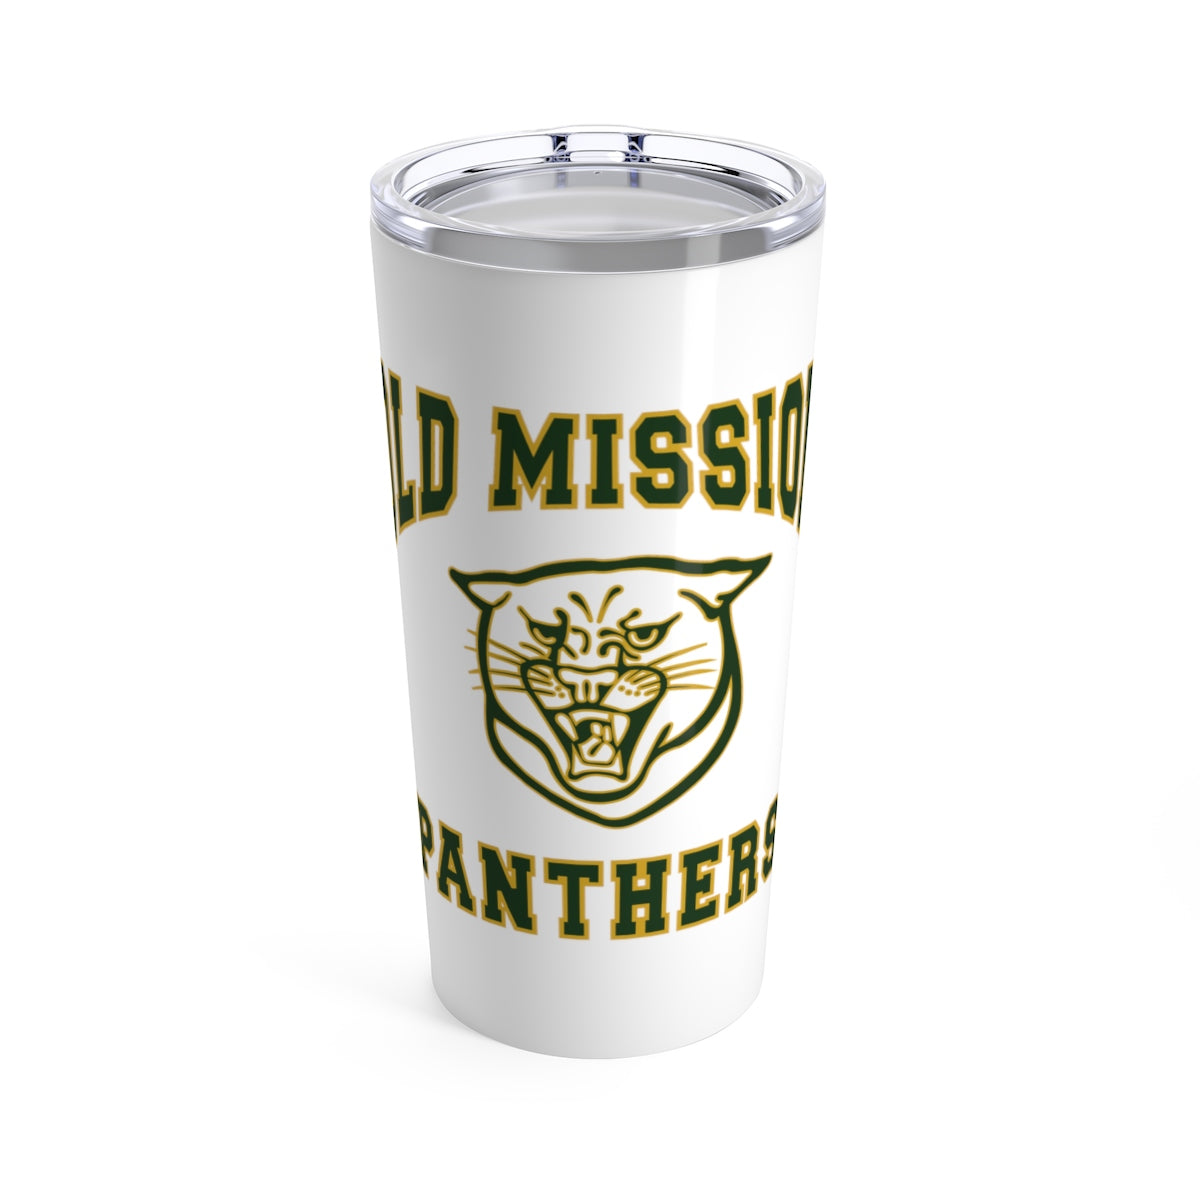 Old Mission Panthers White Stainless Steel Tumbler - 20 oz.